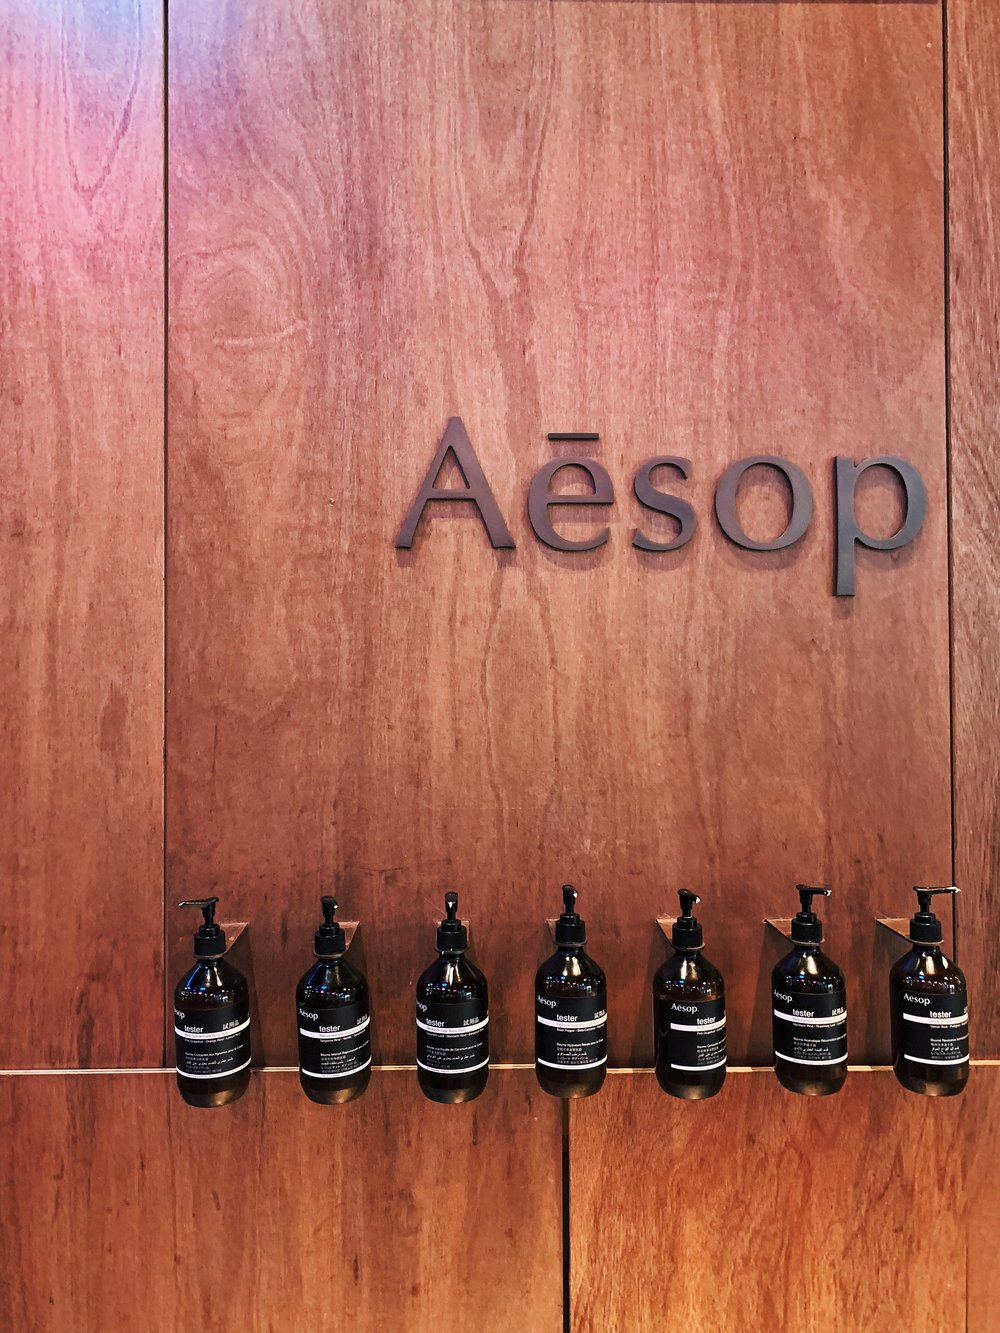 I couldn't help but take little photos of the Aesop stores! Each one is so unique, and I adore the designs of each store.